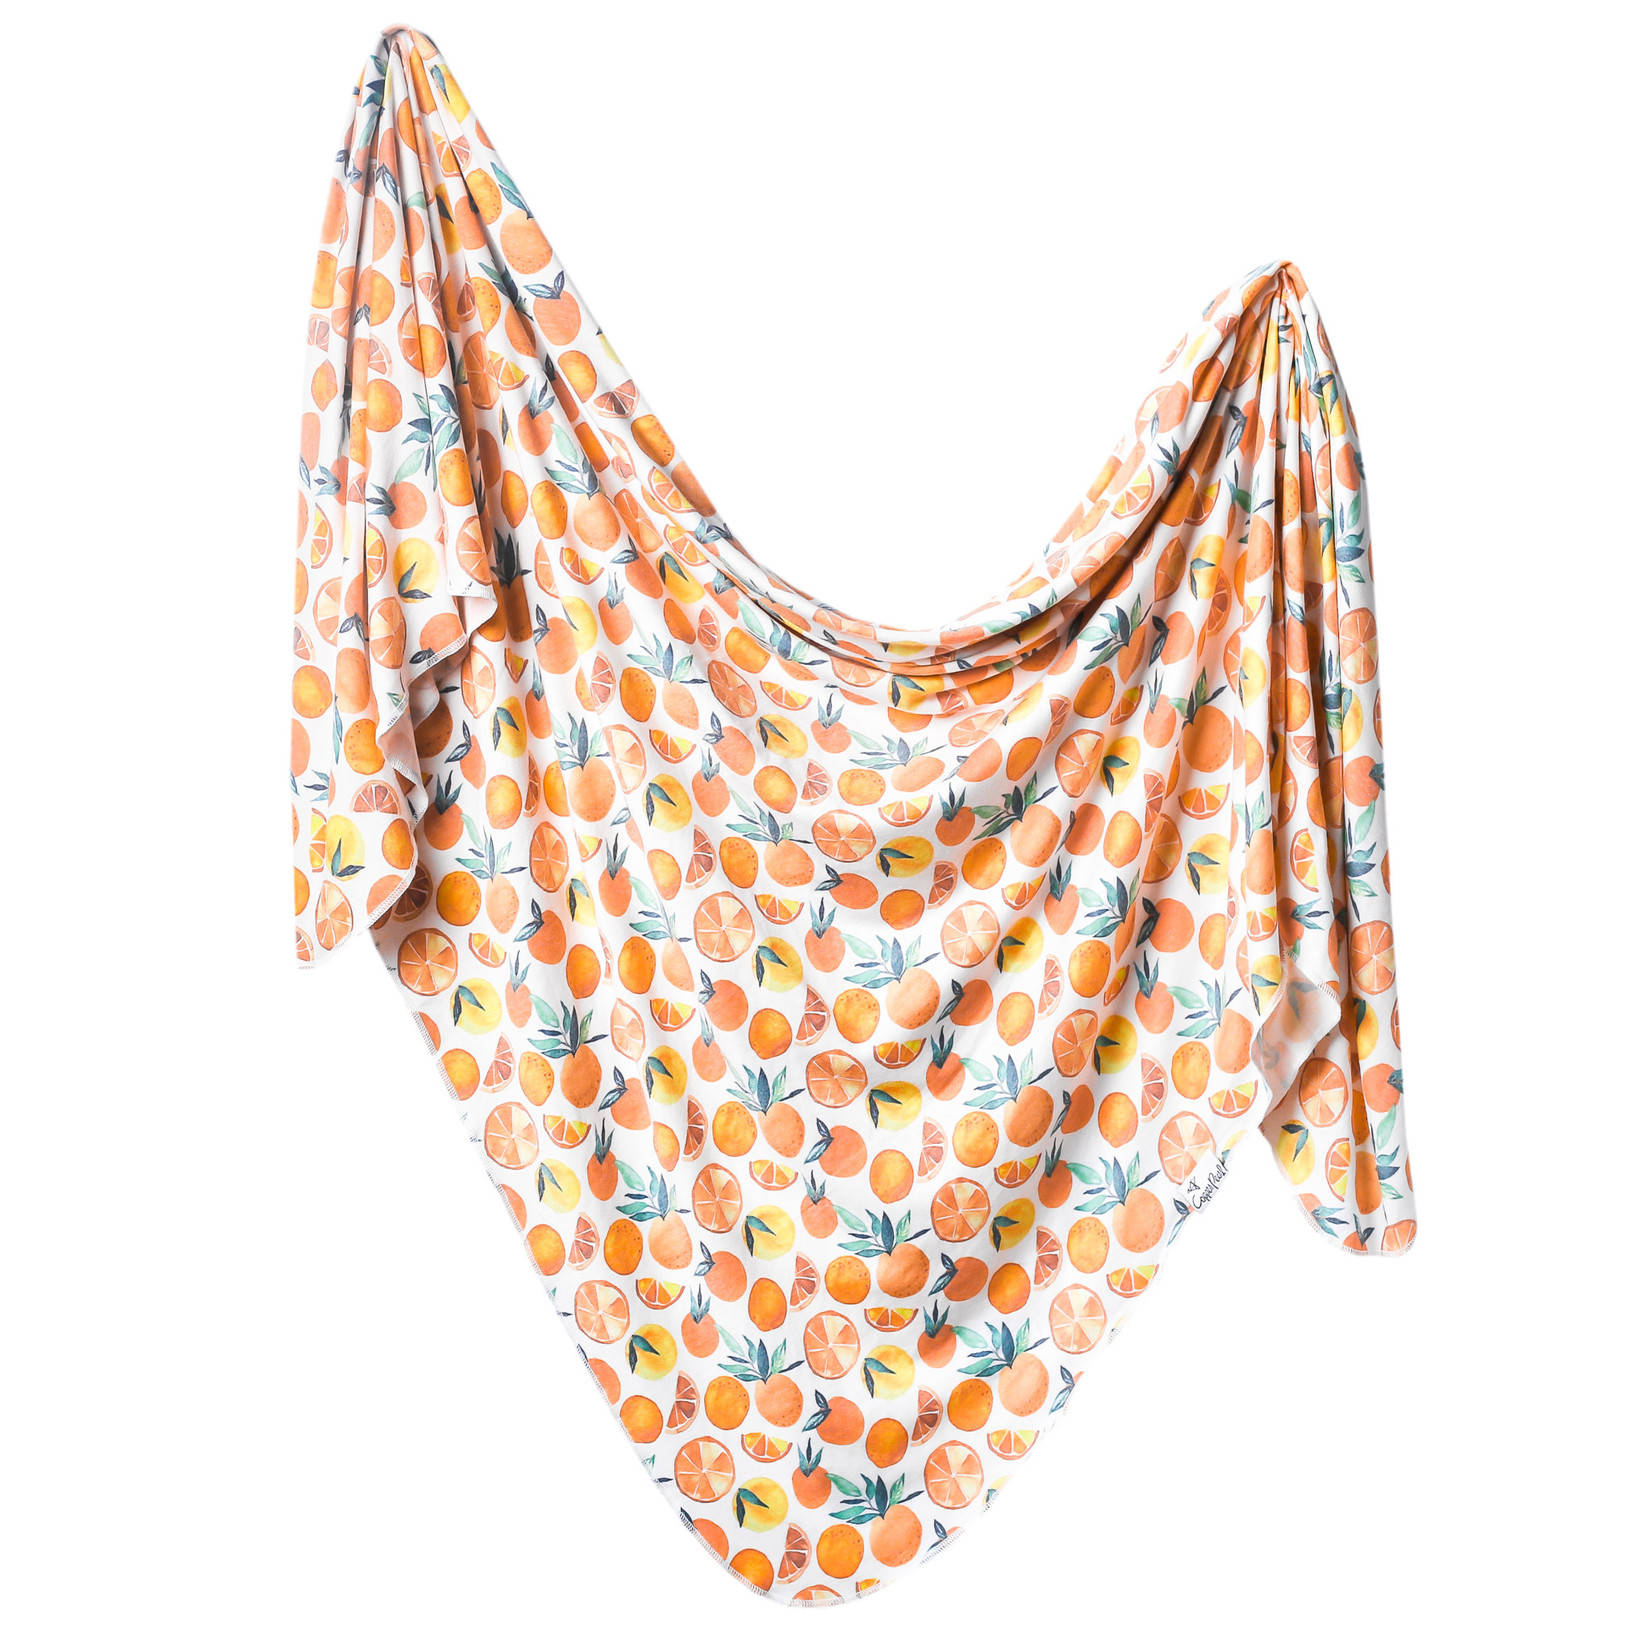 Copper Pearl Baby: Swaddle Blanket